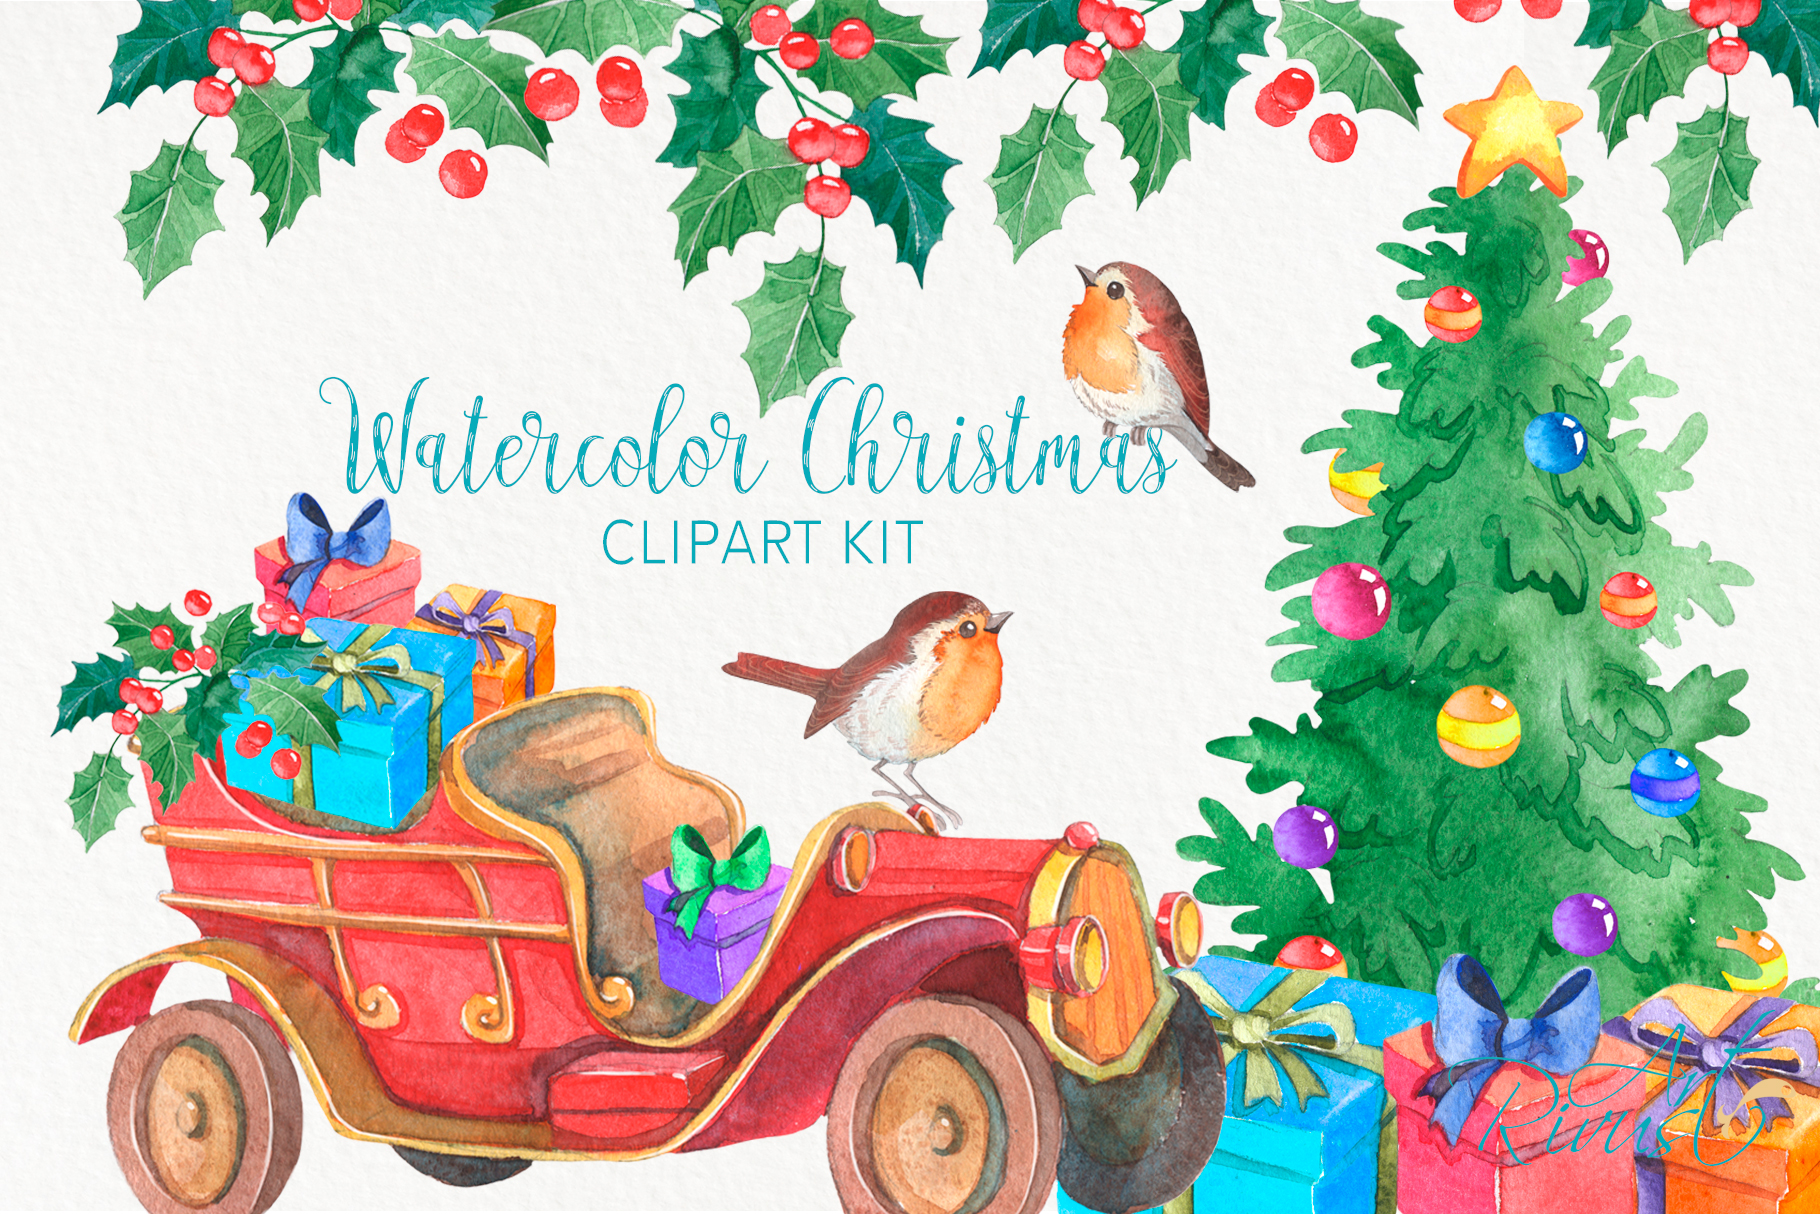 Christmas Truck PNG clipart Merry Christmas Tree Watercolor.